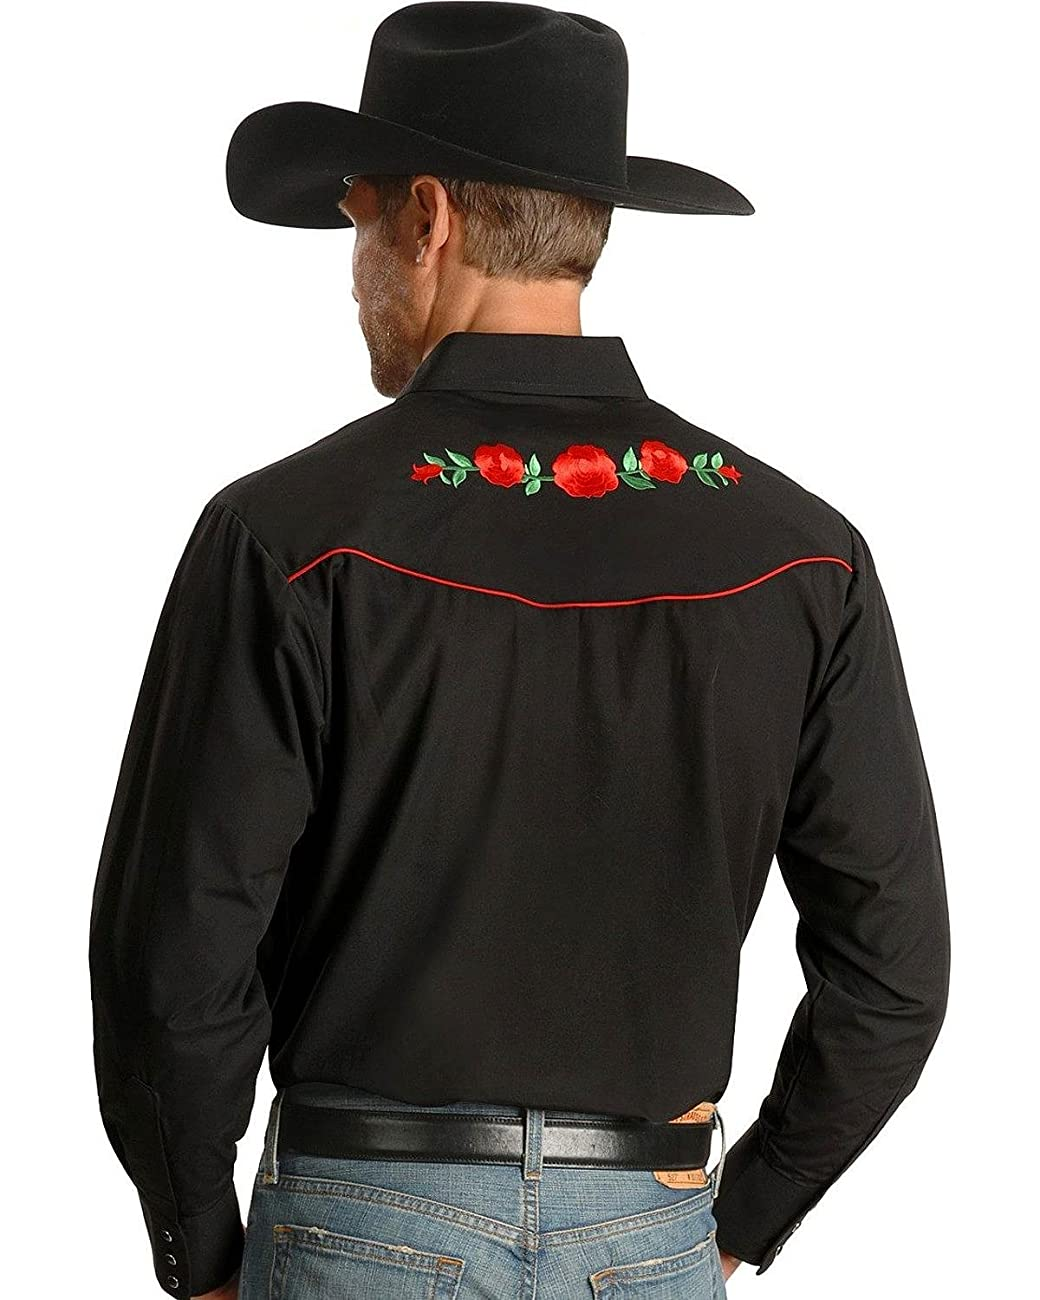 Ely Cattleman Men's Embroidered Rose Design Western Shirt - 15203901-88Blk 2